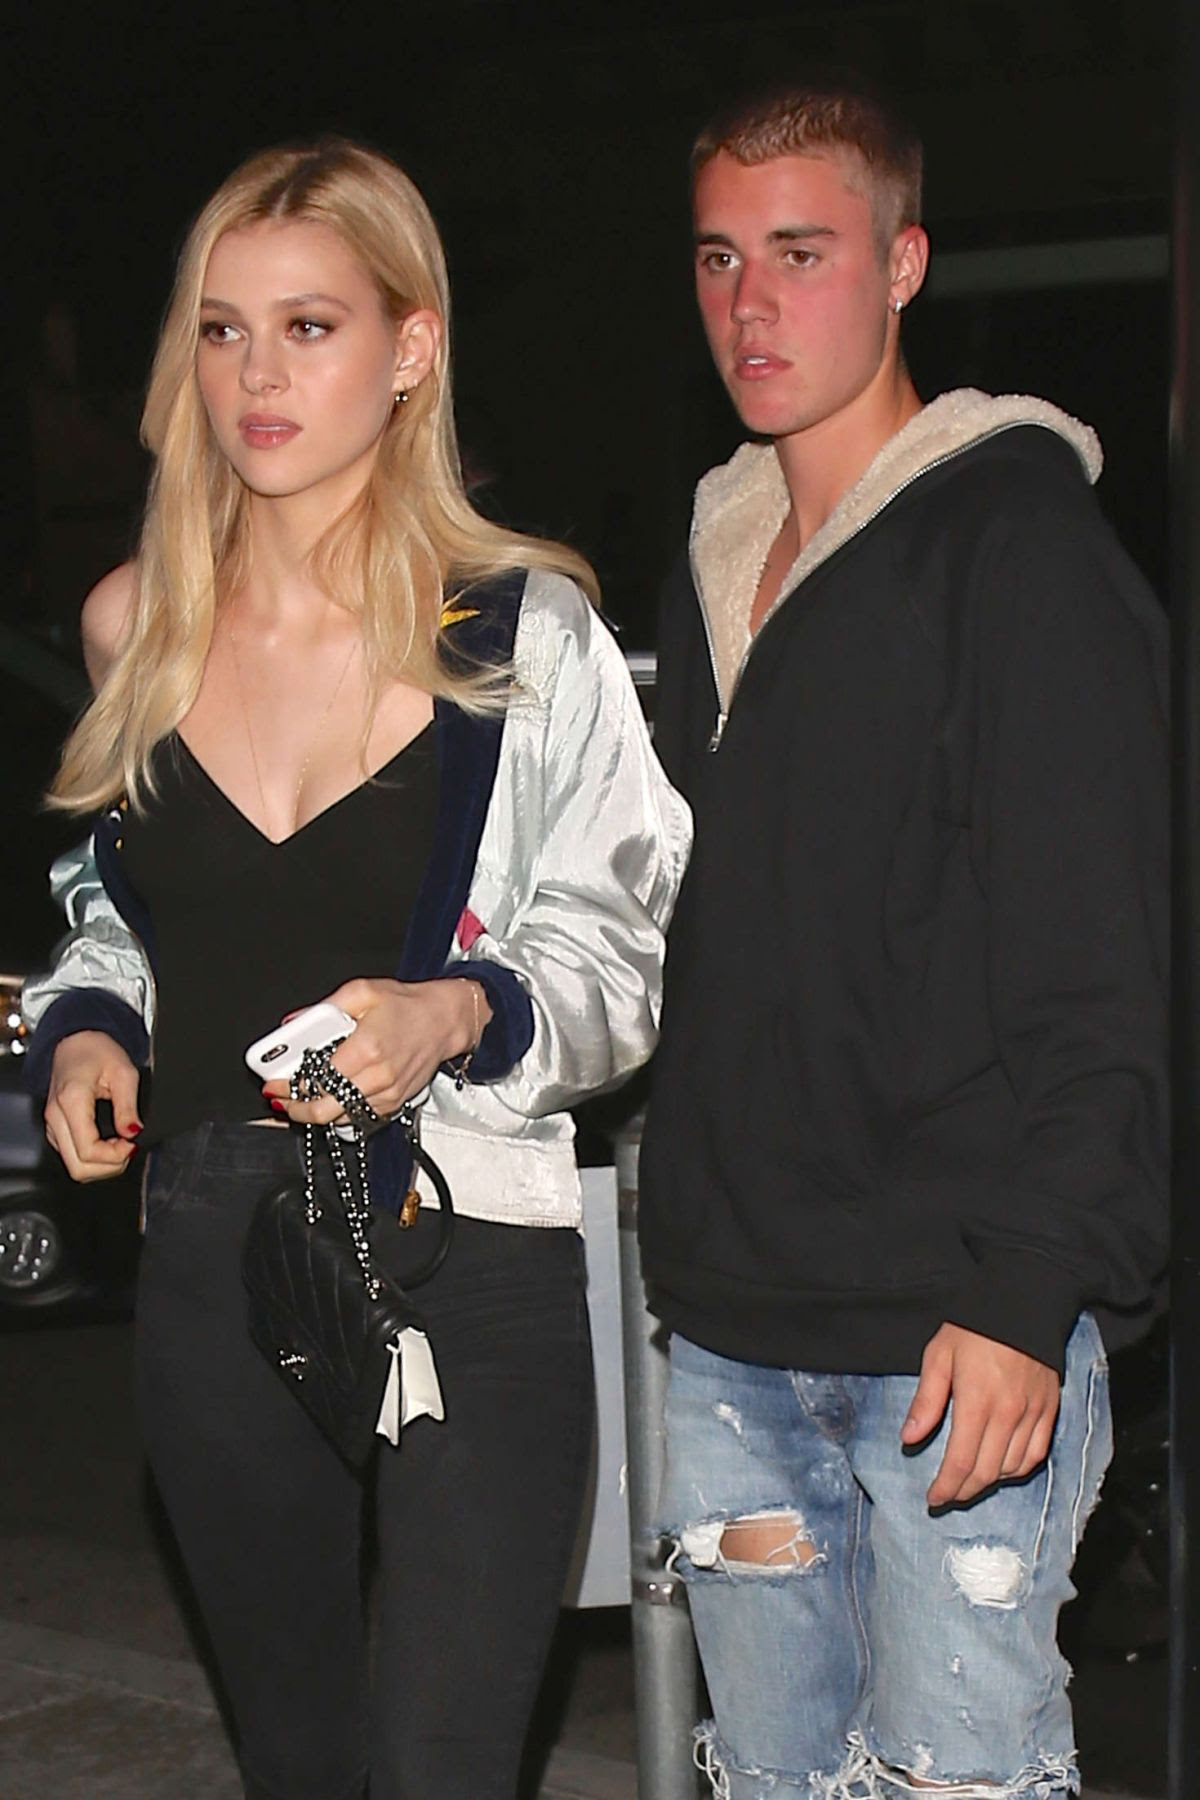 NICOLA PELTZ and Justin Bieber at Mastros Steakhouse in Beverly Hills 05/25/2016